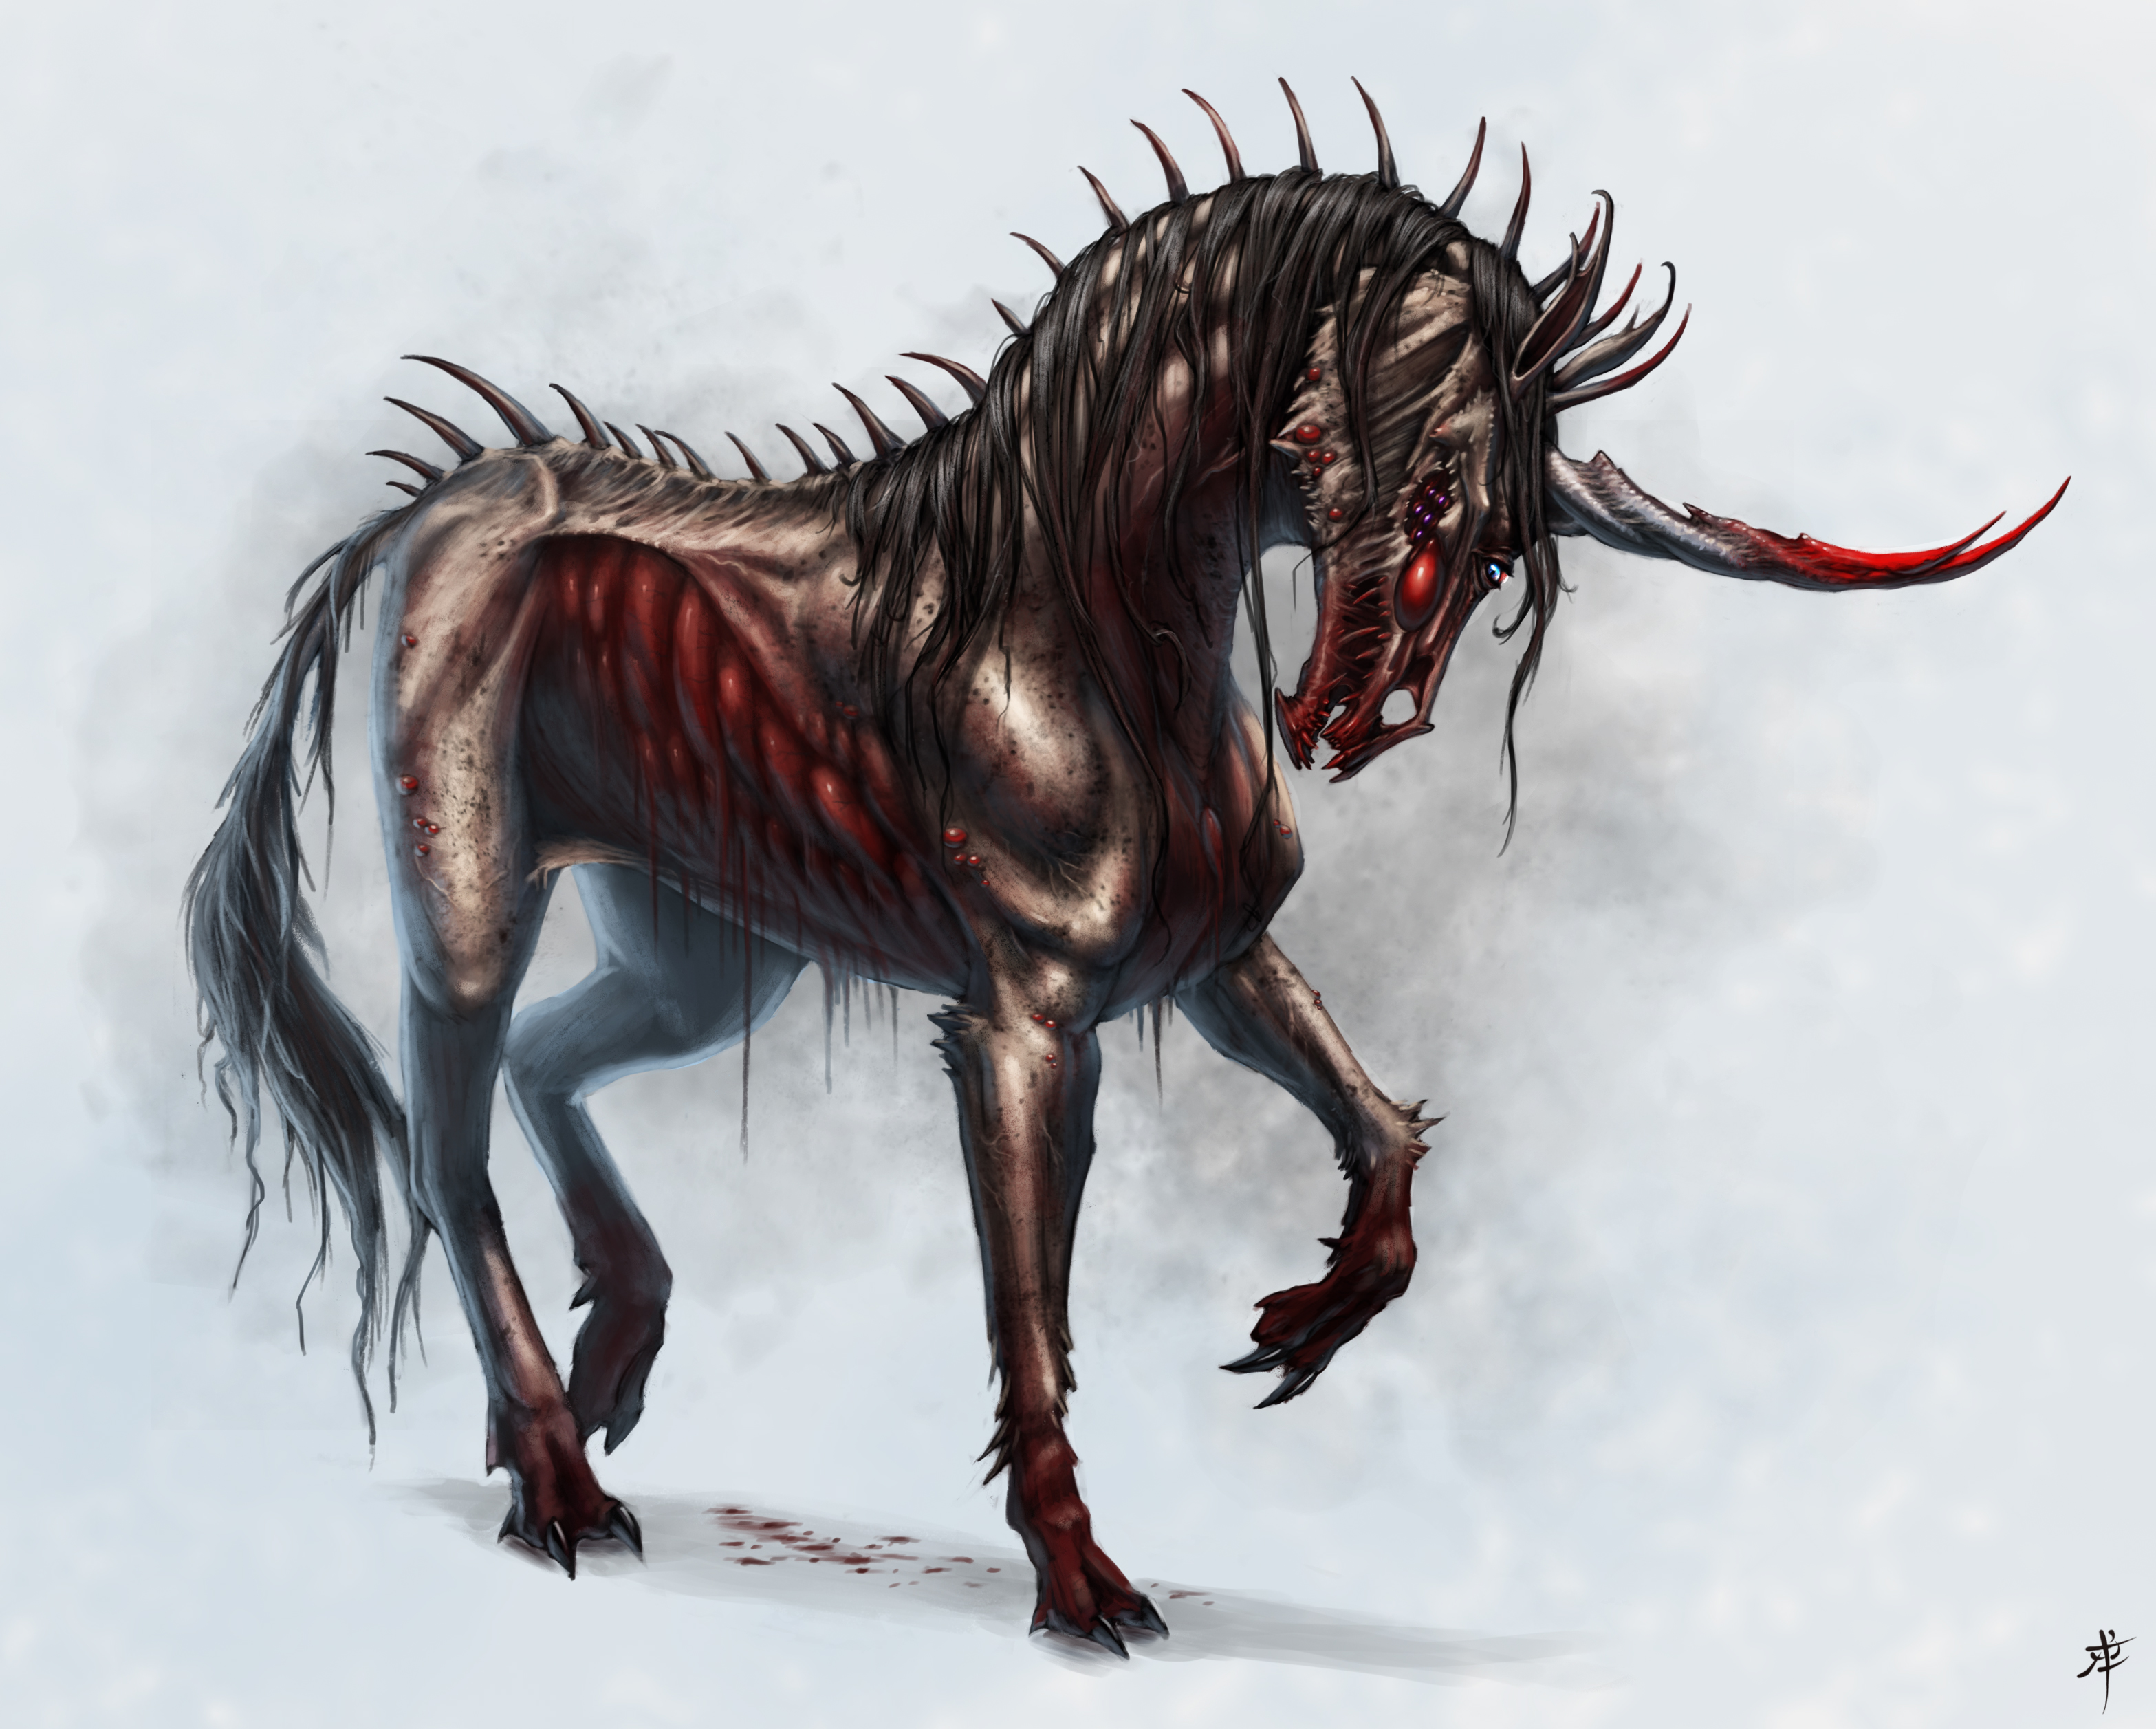 demented unicorn by rob powell on deviantart